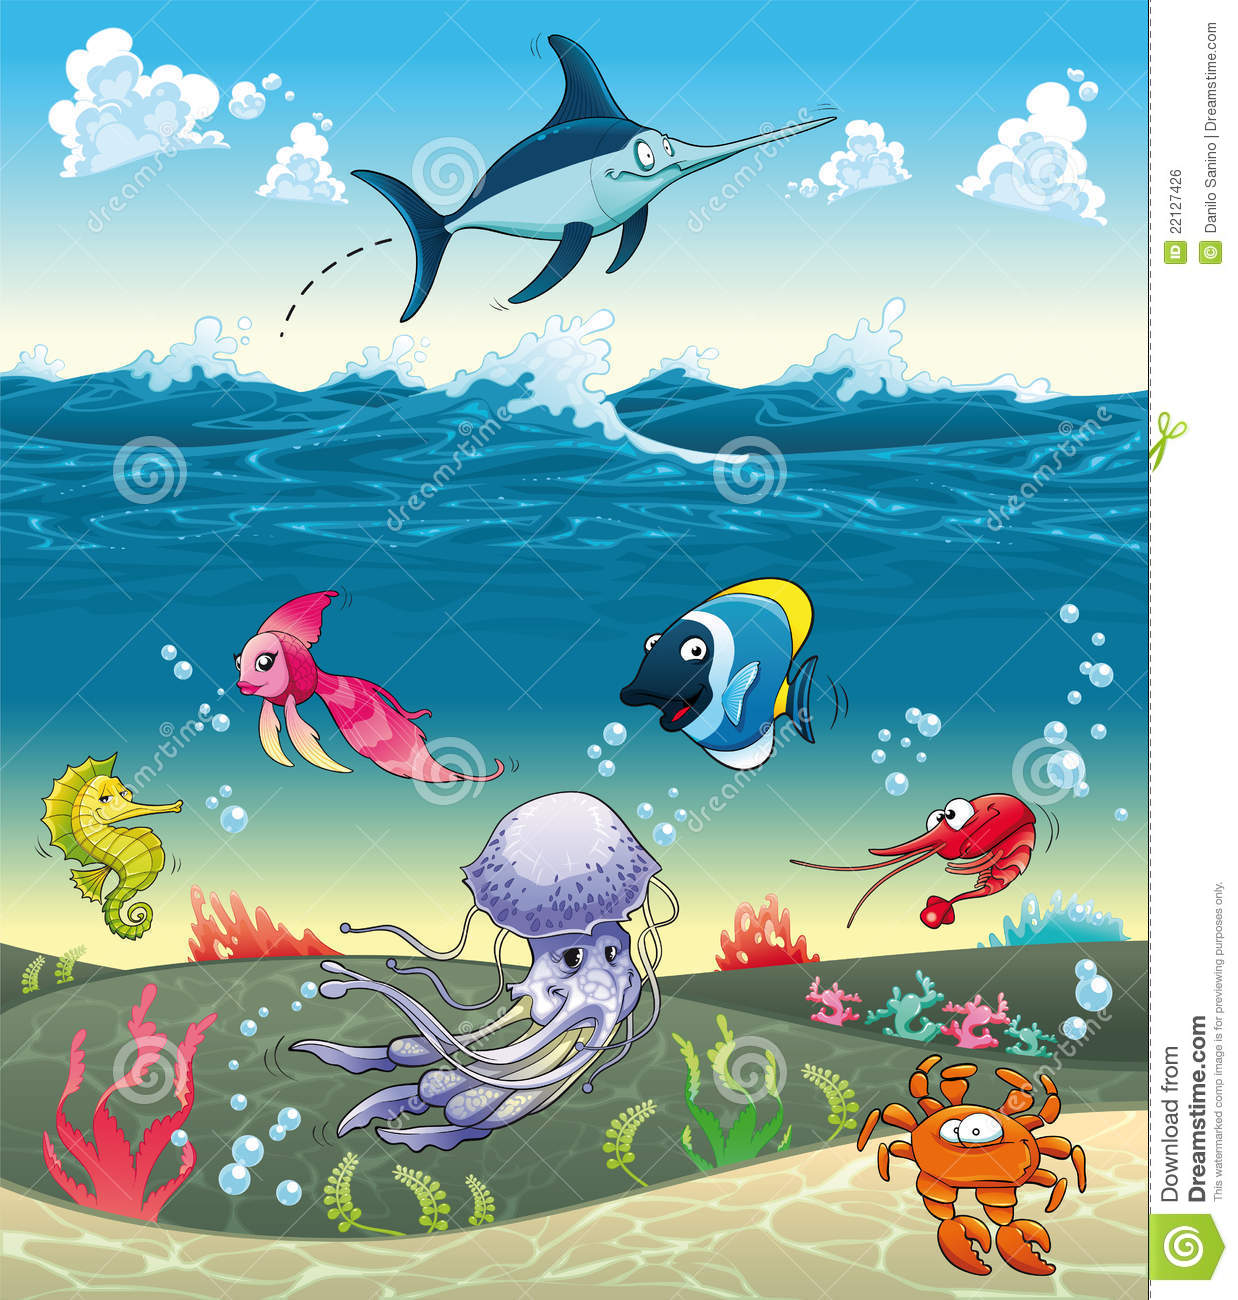 Under the sea with fish and other animals stock vector for Fish under the sea